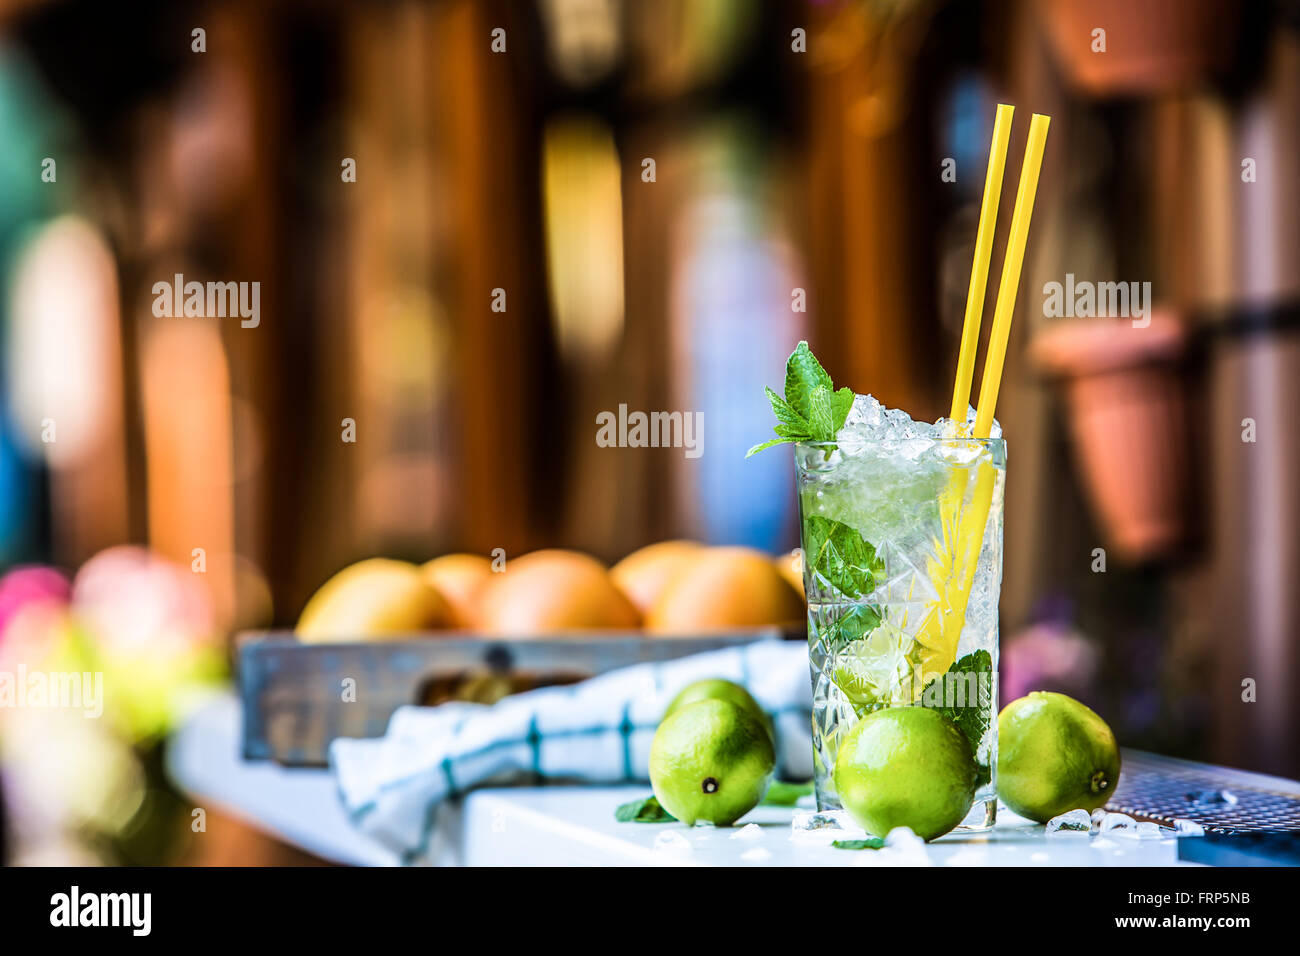 Mojito. Mojito cocktail. Cocktail glass on the bar counter outdoors. Alcoholic drink. - Stock Image